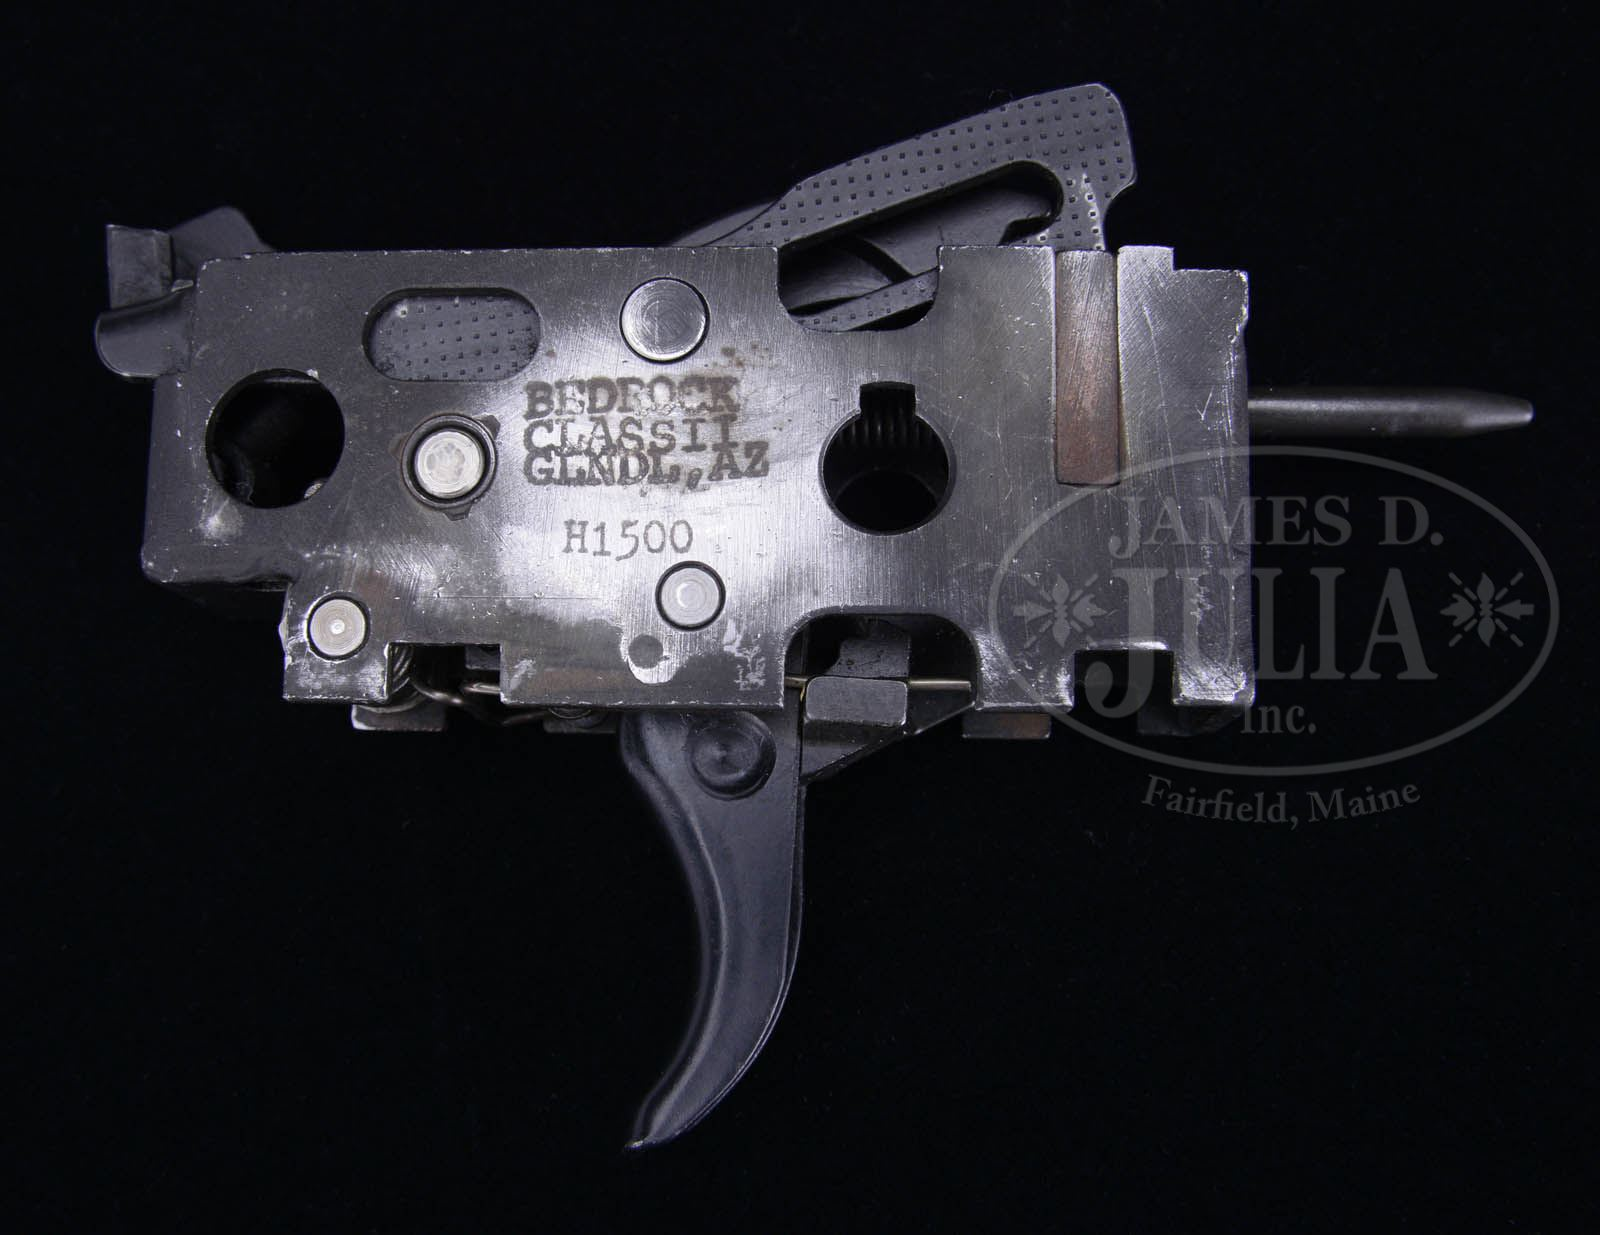 Info/Pics of Different Manufacturers Registered HK Trigger Packs, Sears an Housings-bedrock.jpg